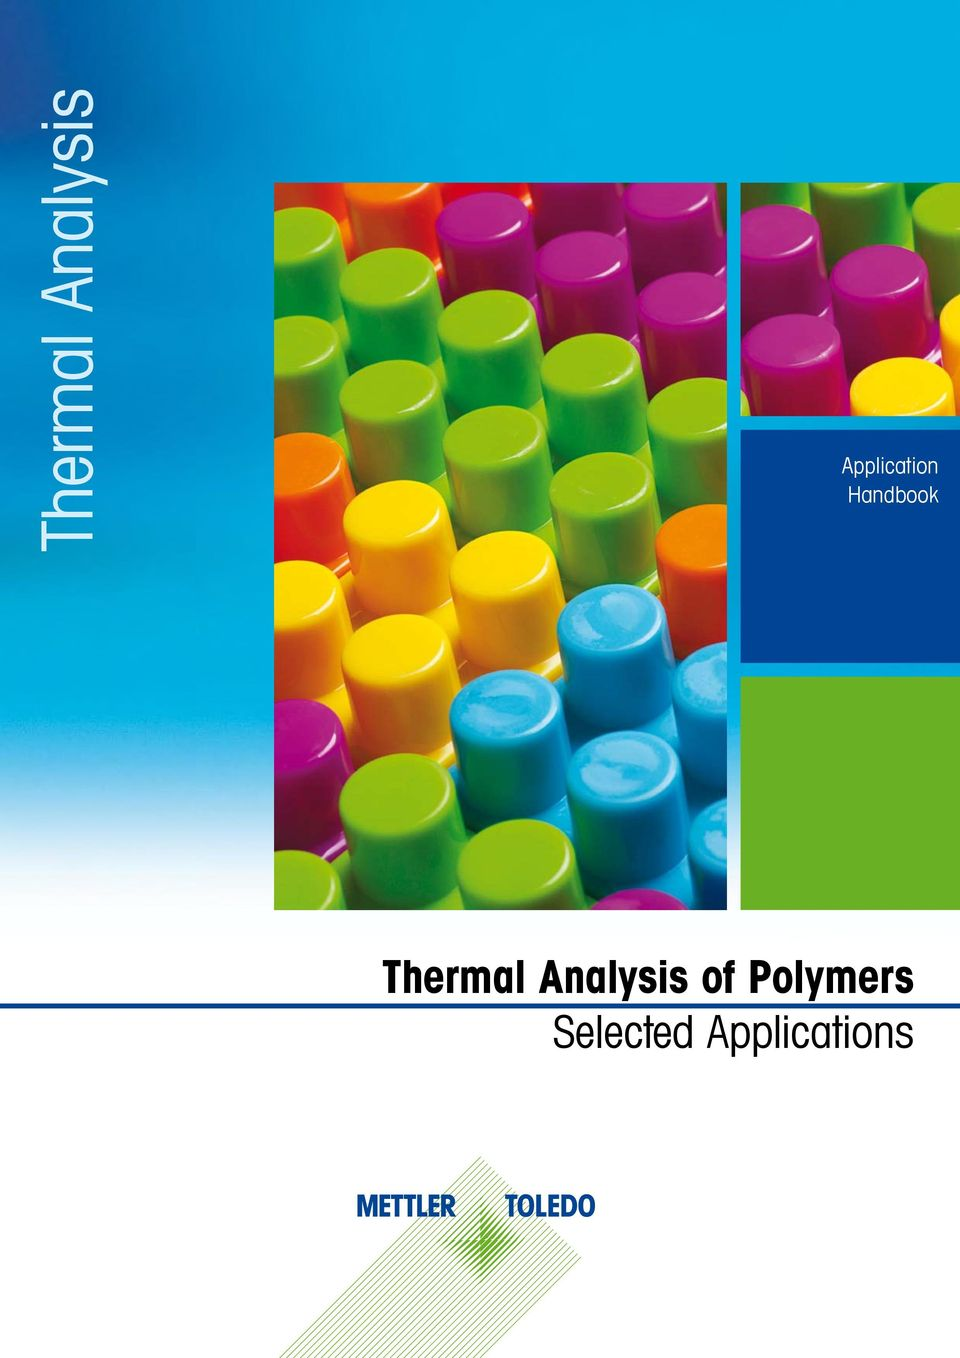 of Polymers Selected